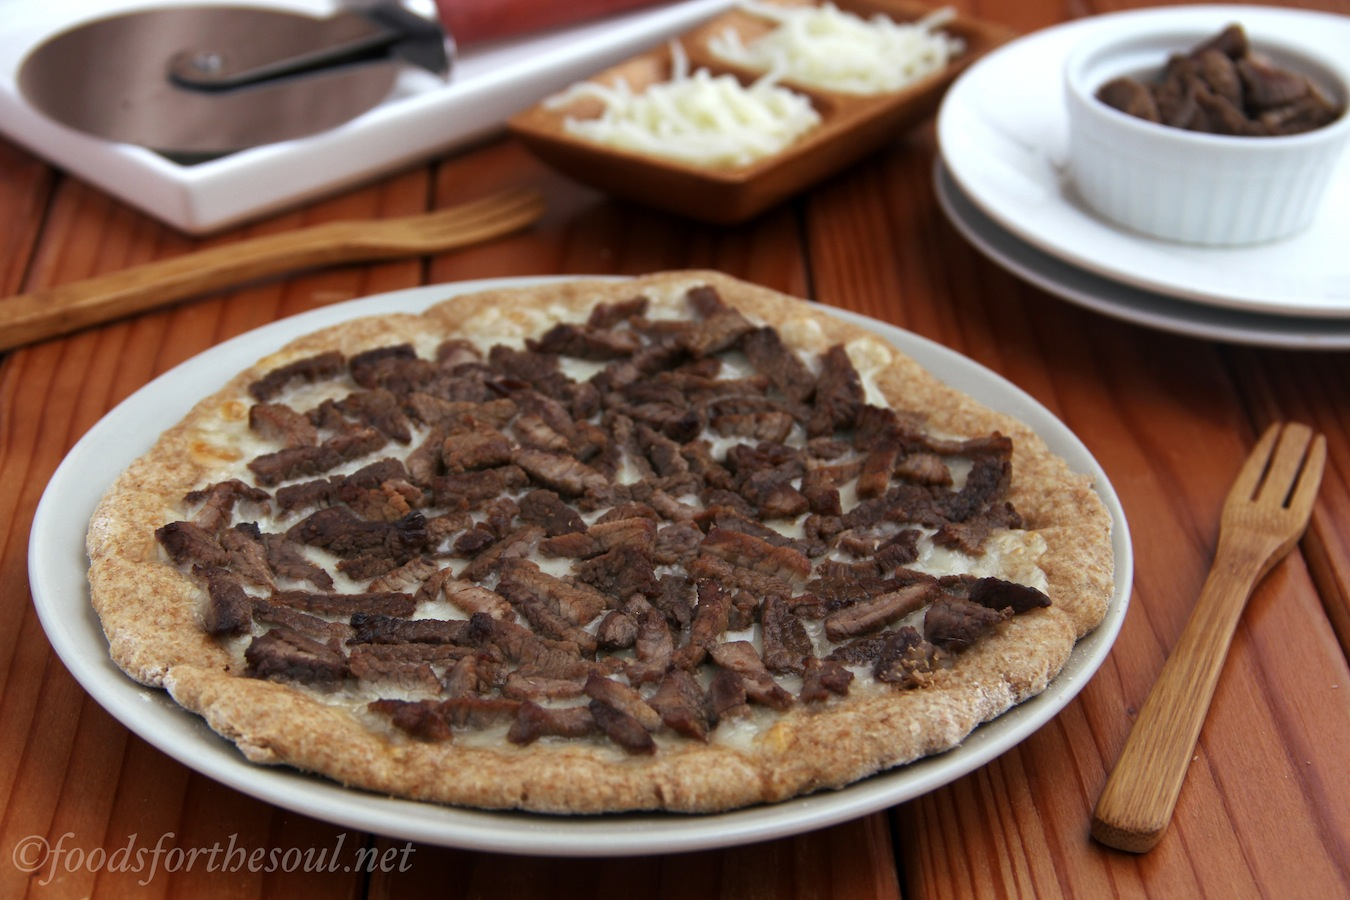 Philly Cheesesteak Flatbread | by Foods for the Soul {foodsforthesoul.net}